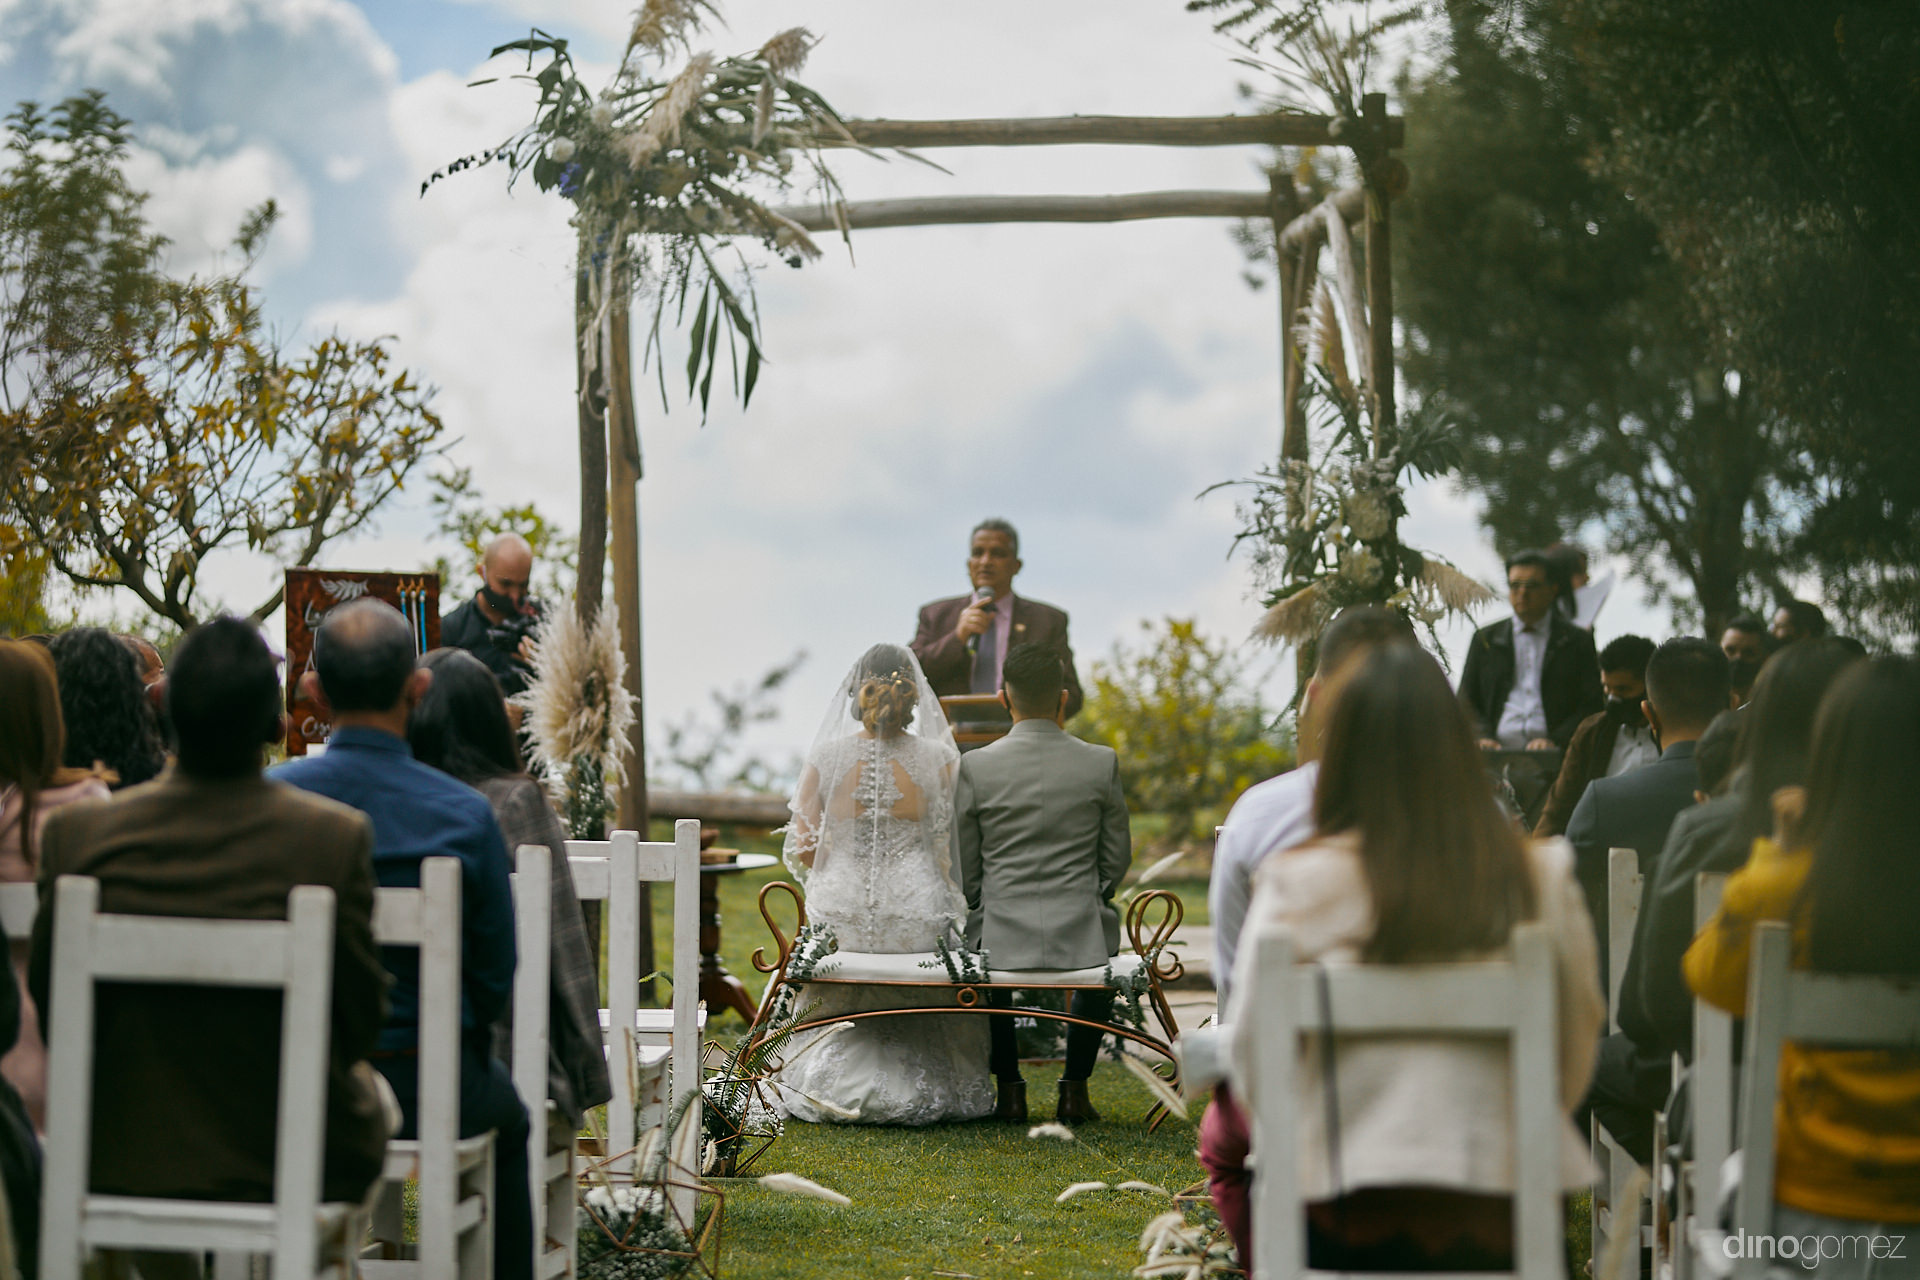 002 Casual Couples Session On A Budget - Diy Budget Destination Weddings Can Be Prety Too!